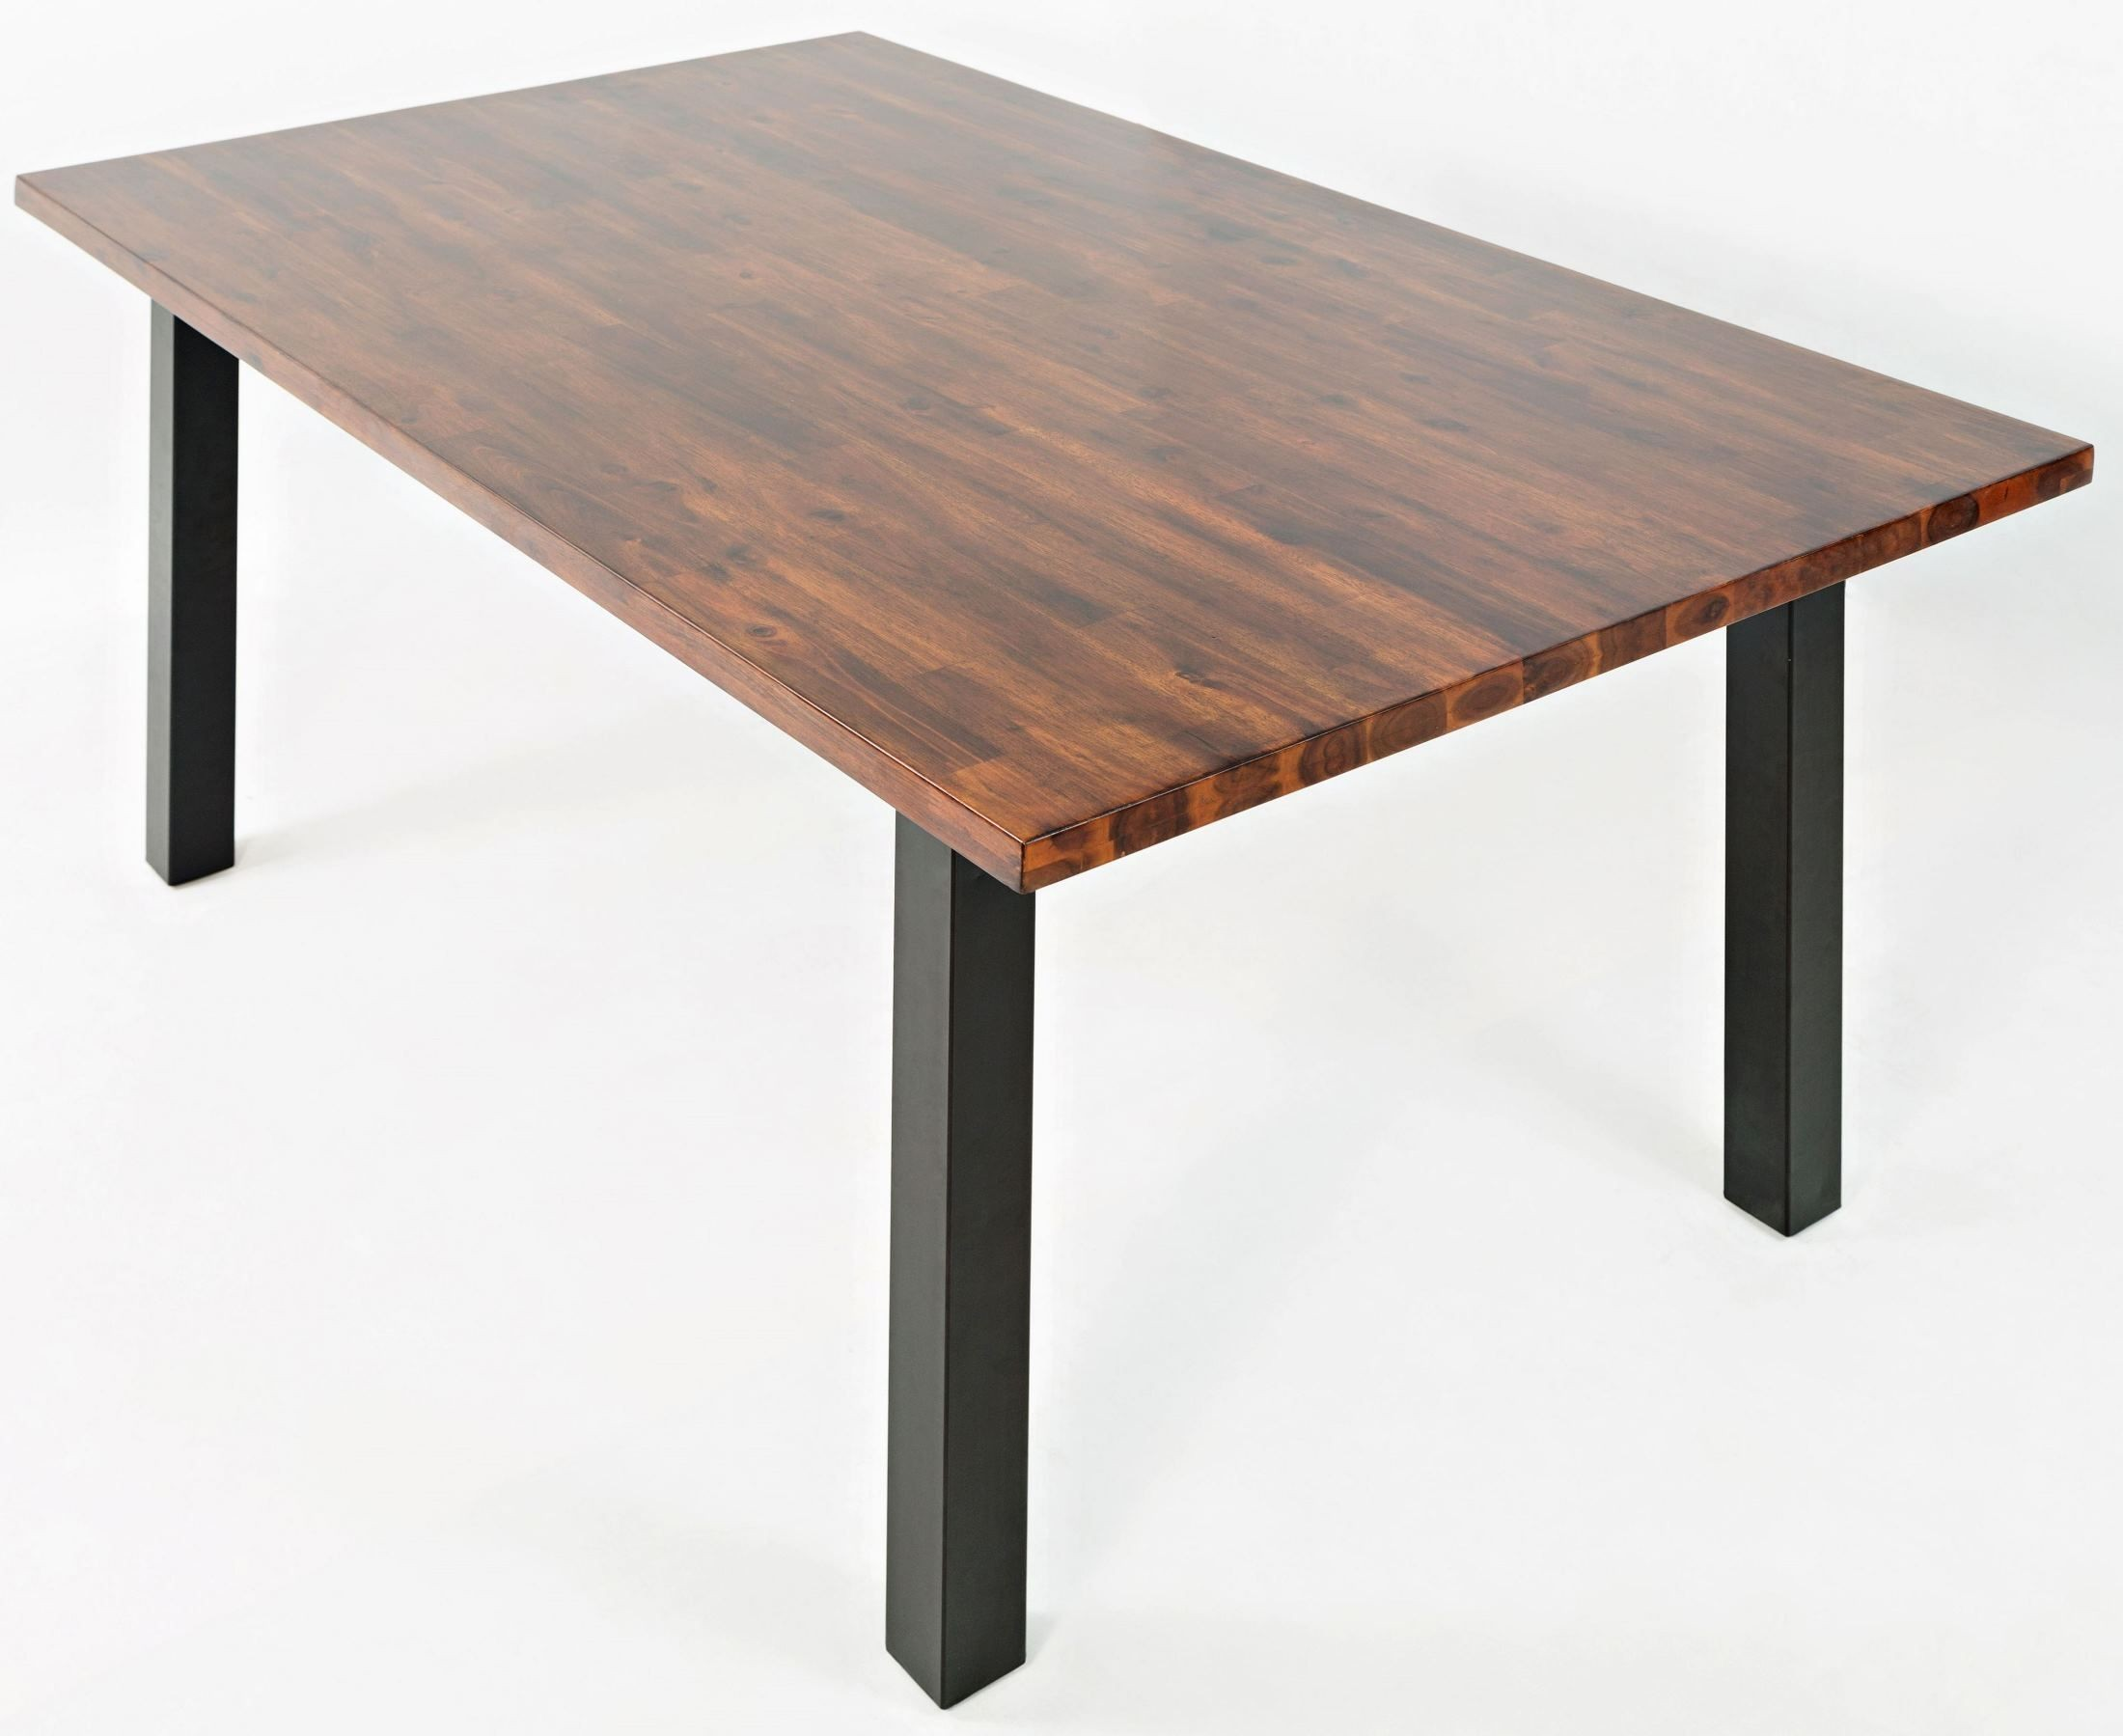 Wood And Metal Table: Urban Dweller Wood And Metal Dining Table From Jofran